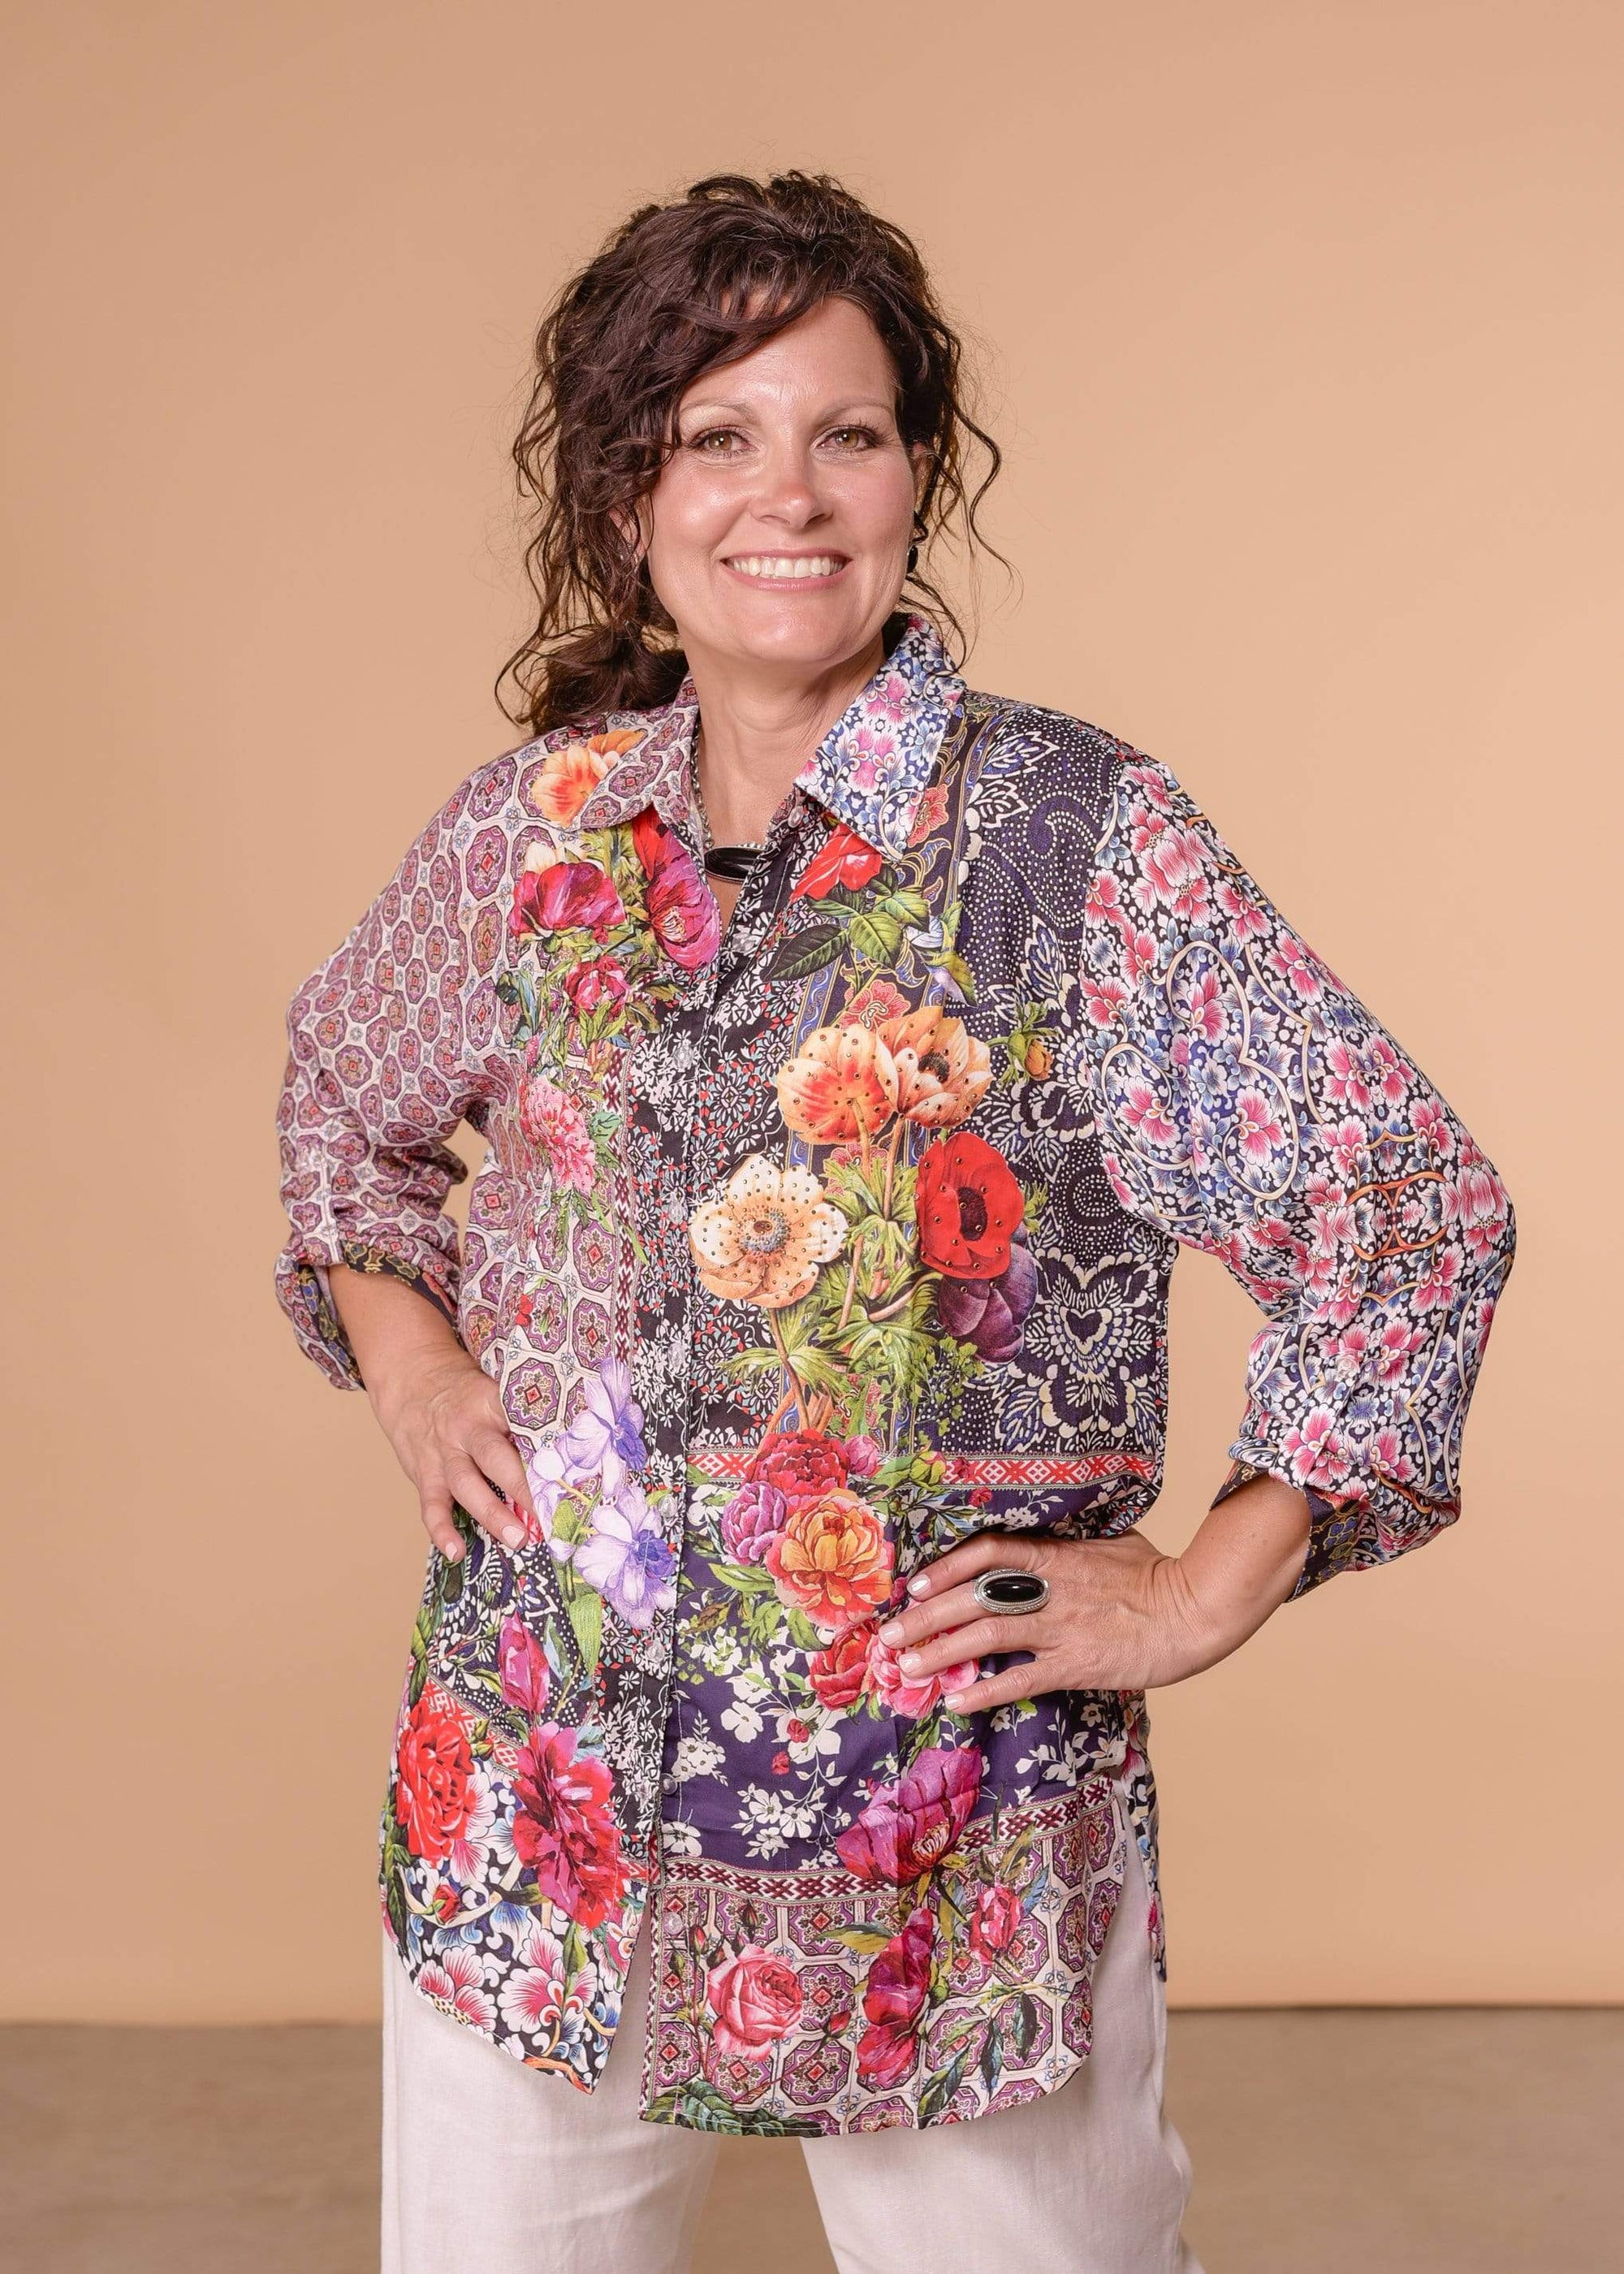 Accessorize In Style Dressy AIS Collared Blouse - Purple Floral